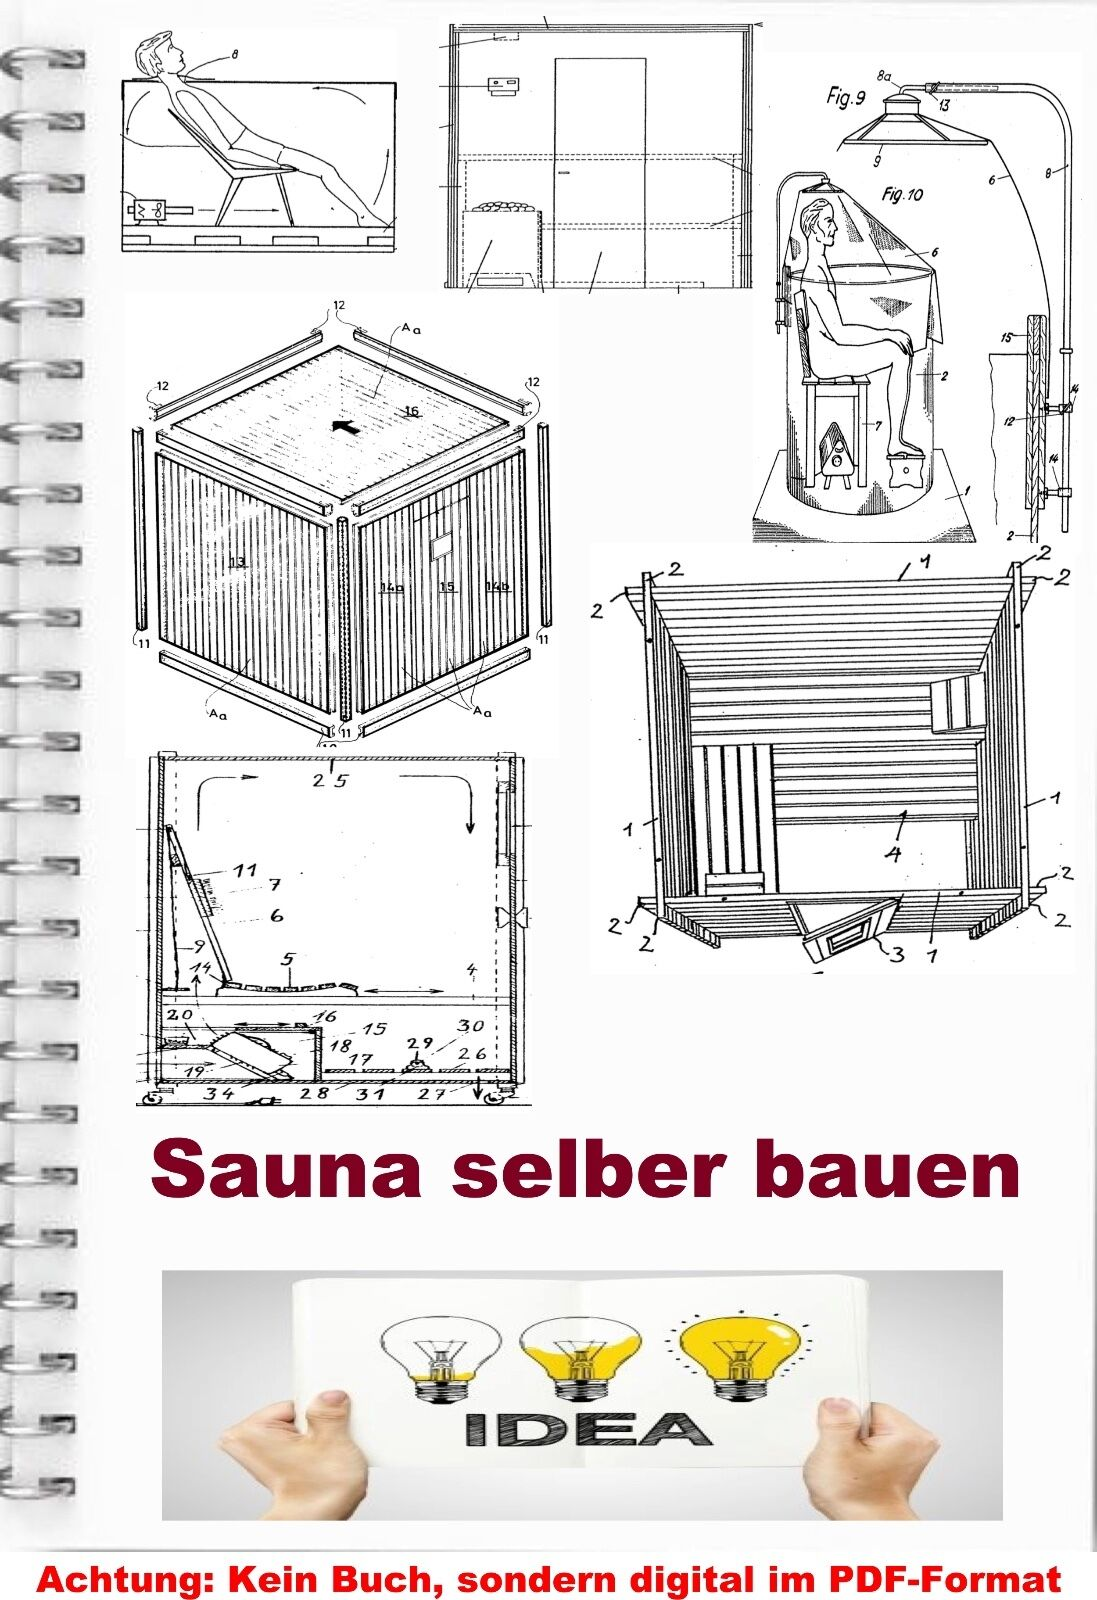 sauna bauen sauna technik ber 690 baupl ne sweatbath patentsammlung pdf eur 13 70 picclick es. Black Bedroom Furniture Sets. Home Design Ideas